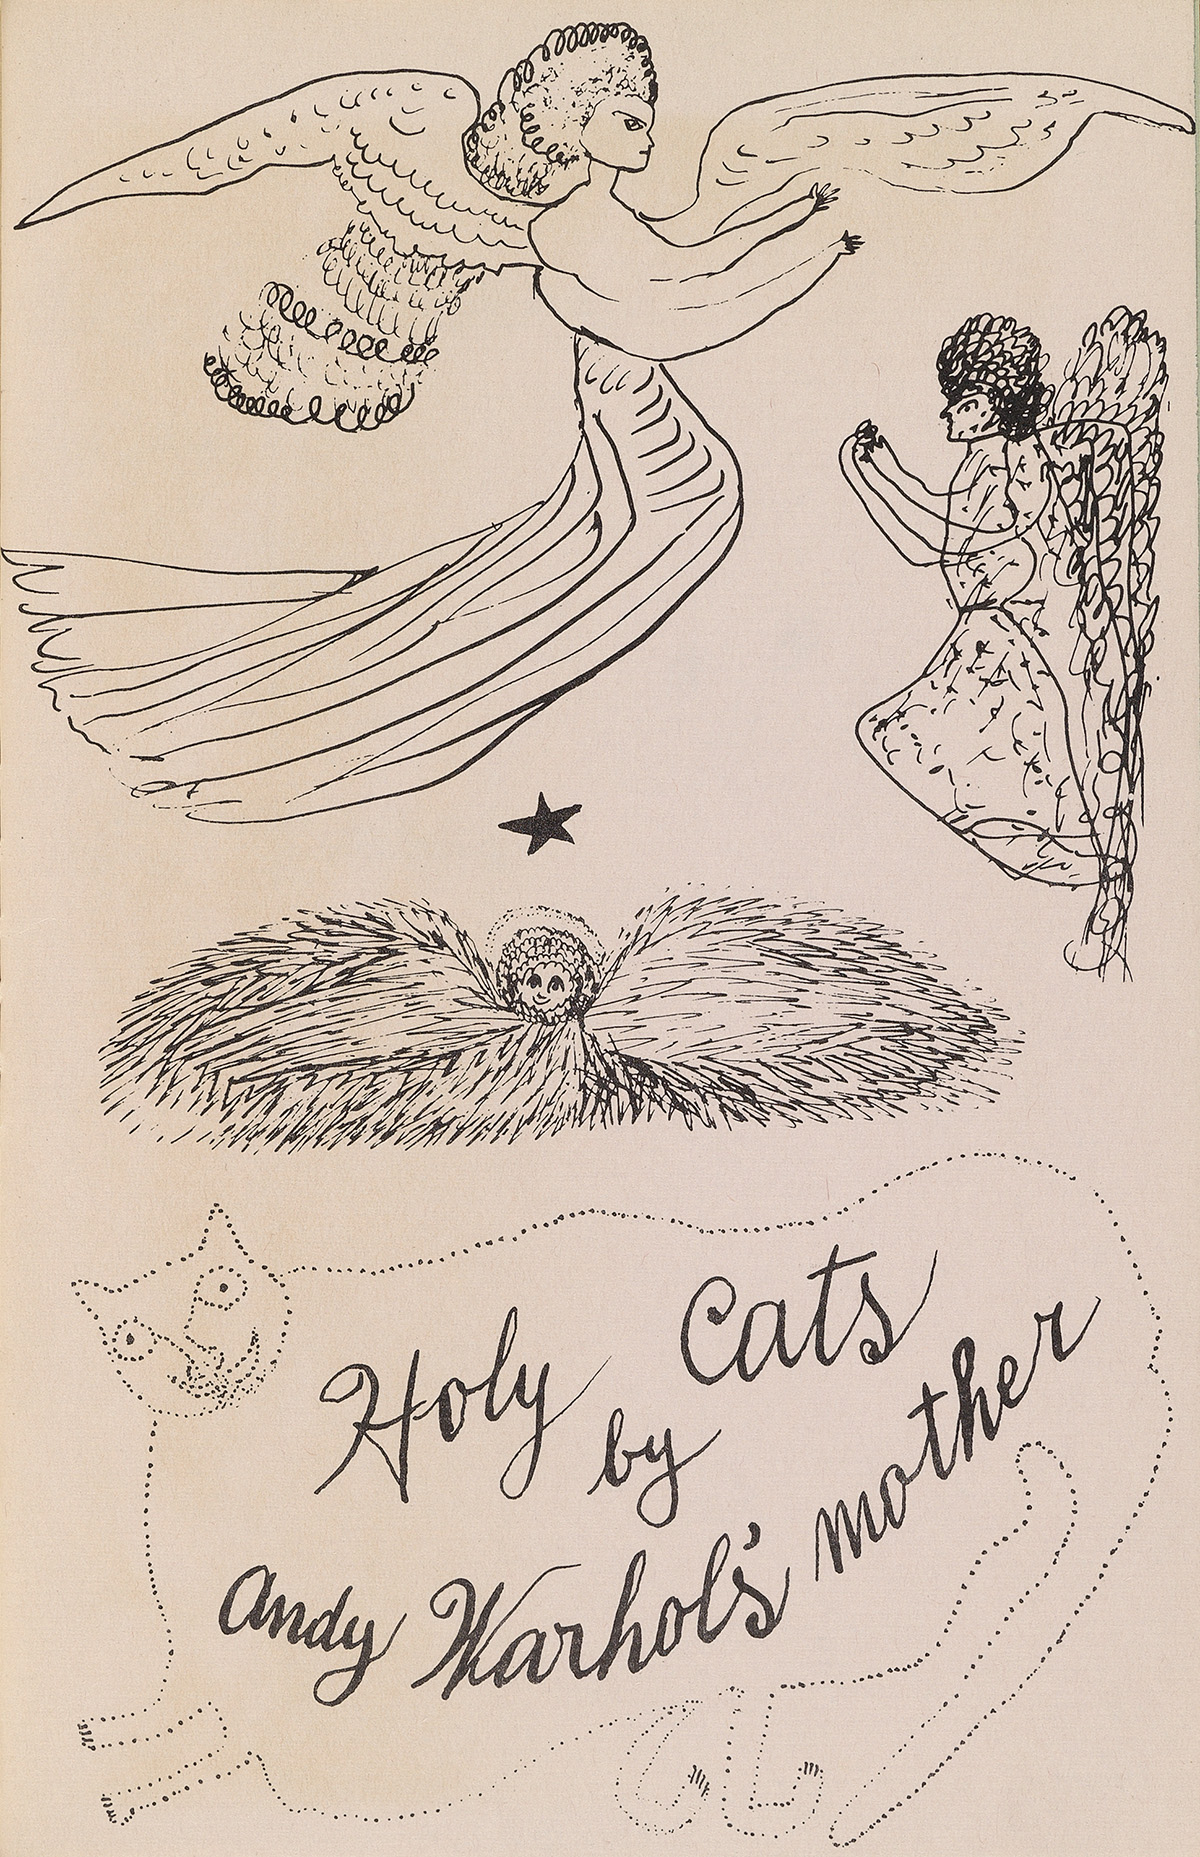 ANDY-WARHOL-Holy-Cats-by-Andy-Warhols-Mother